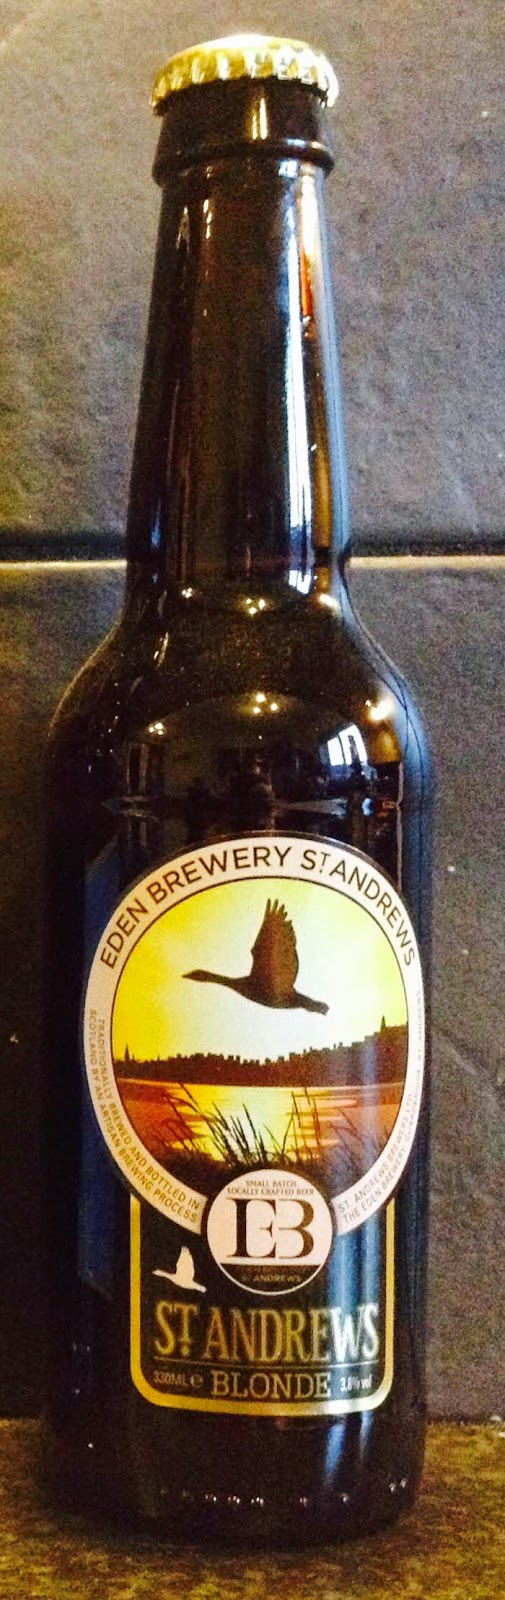 St Andrews Blonde (Eden Brewery)